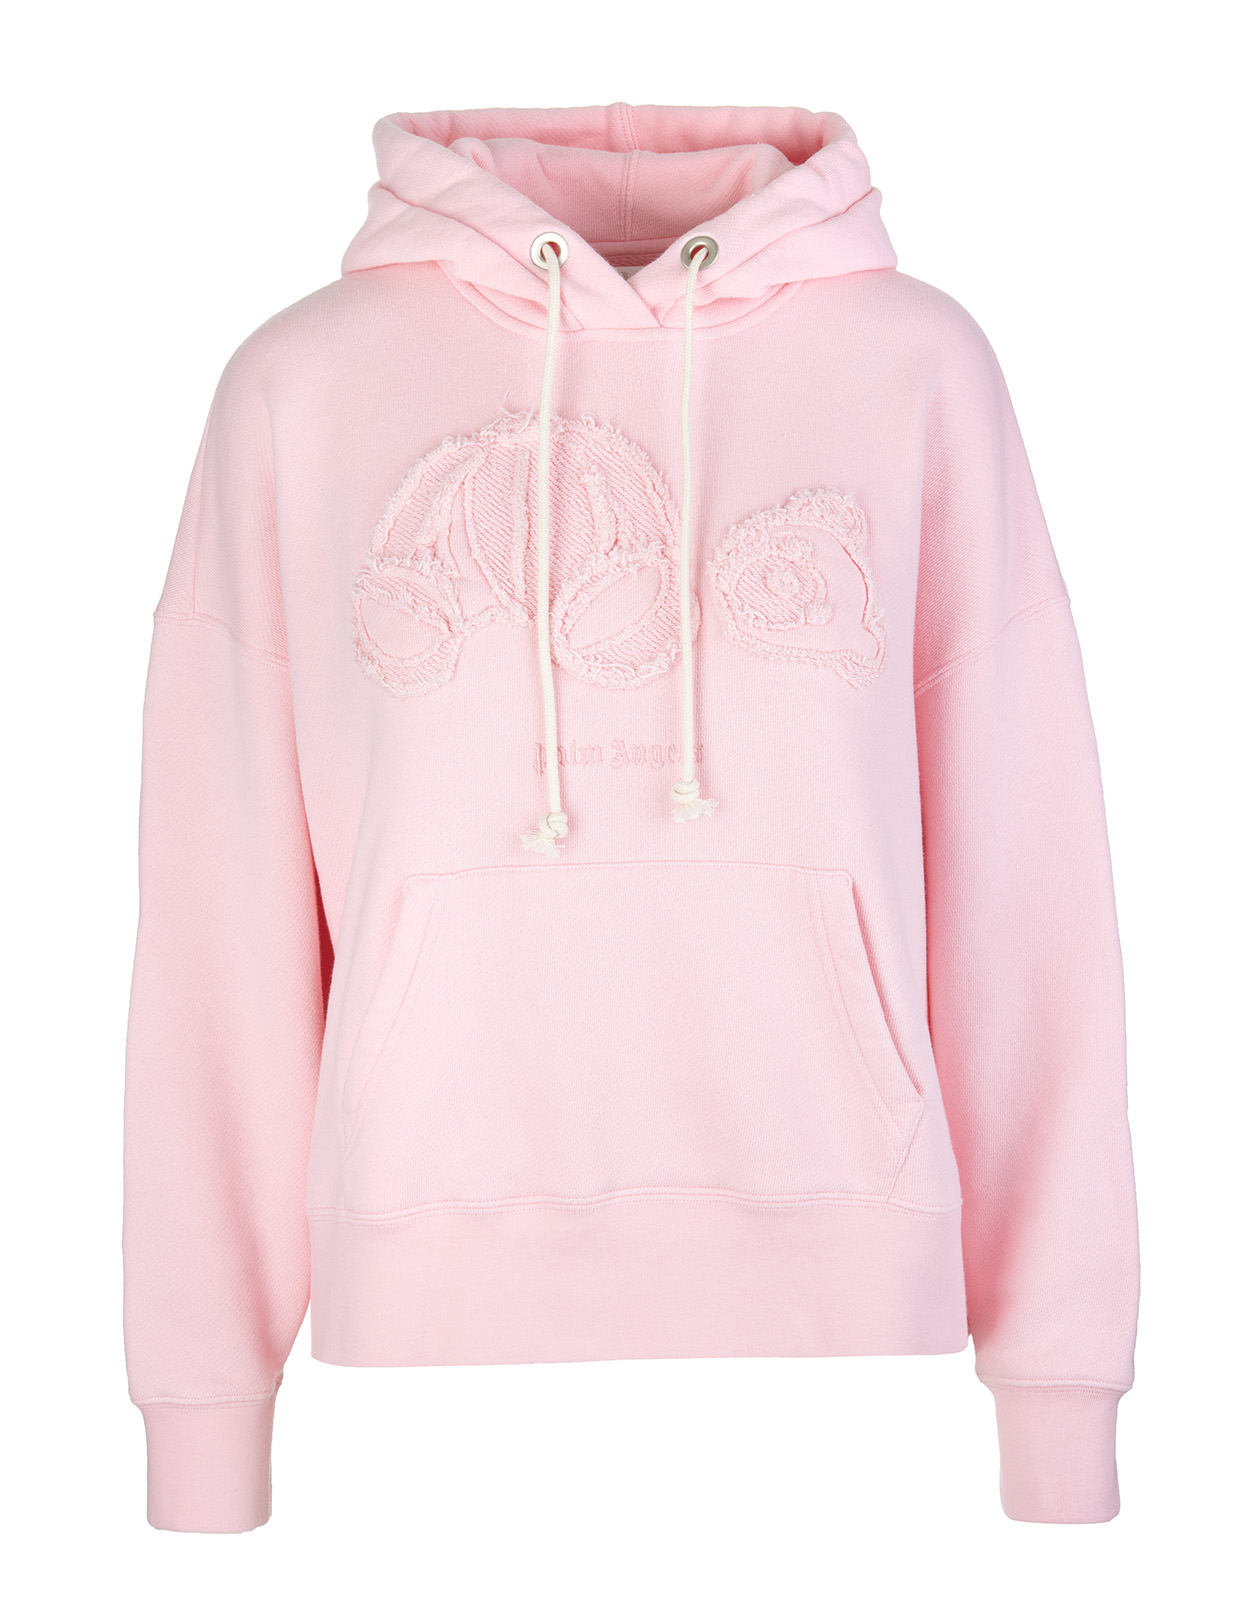 PALM ANGELS Woman Pink Hoodie With Knitted Bear